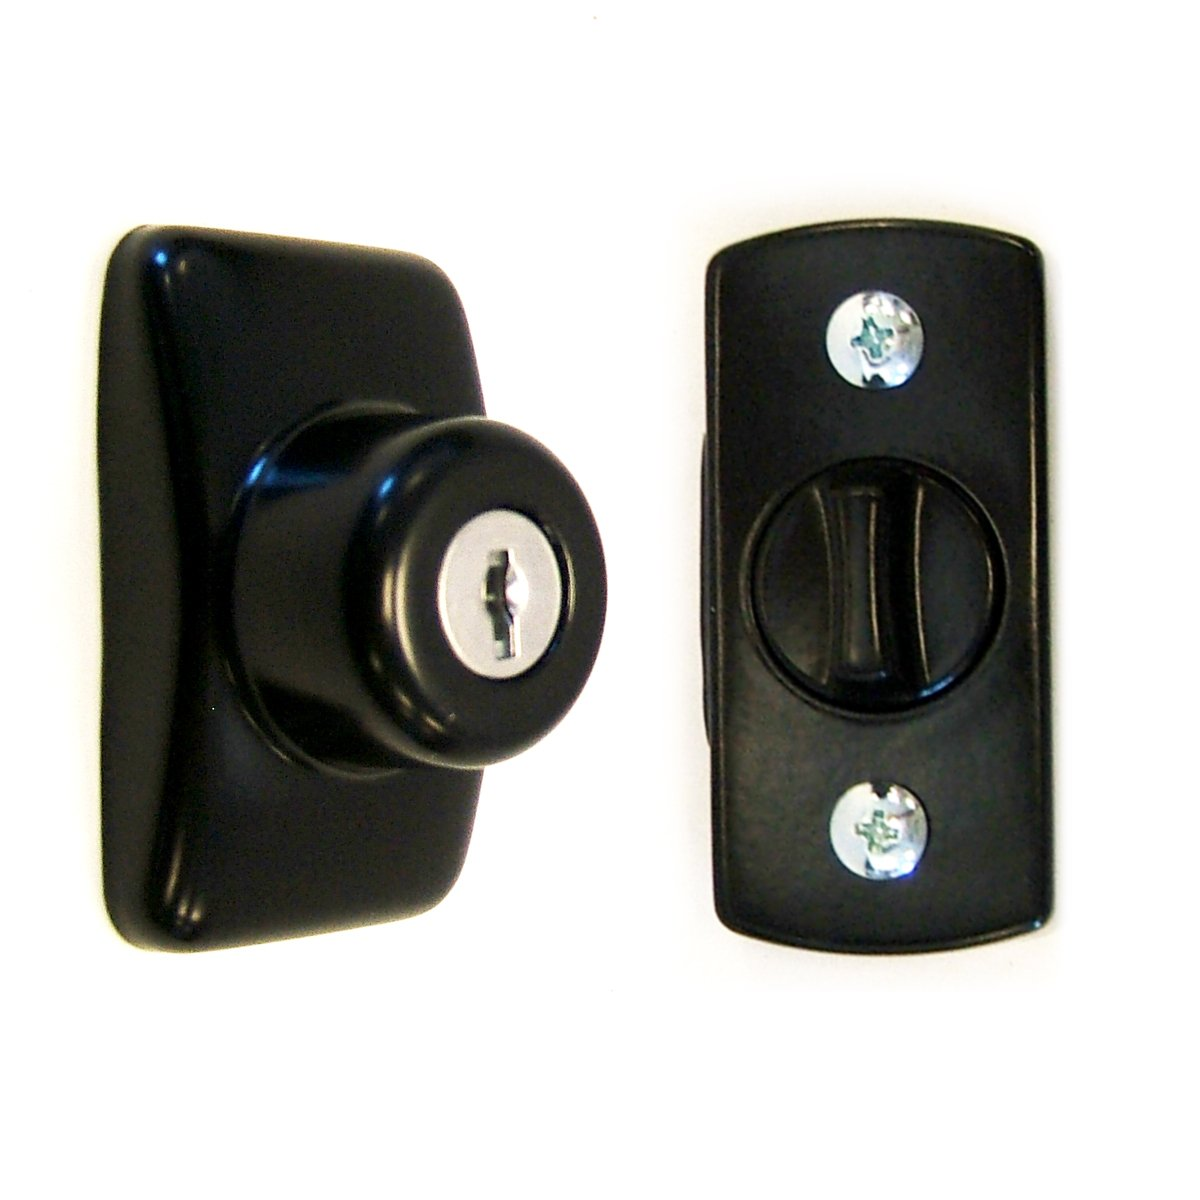 Ideal Security GL Keyed Deadbolt For Storm and Screen Doors Easy to Install Black